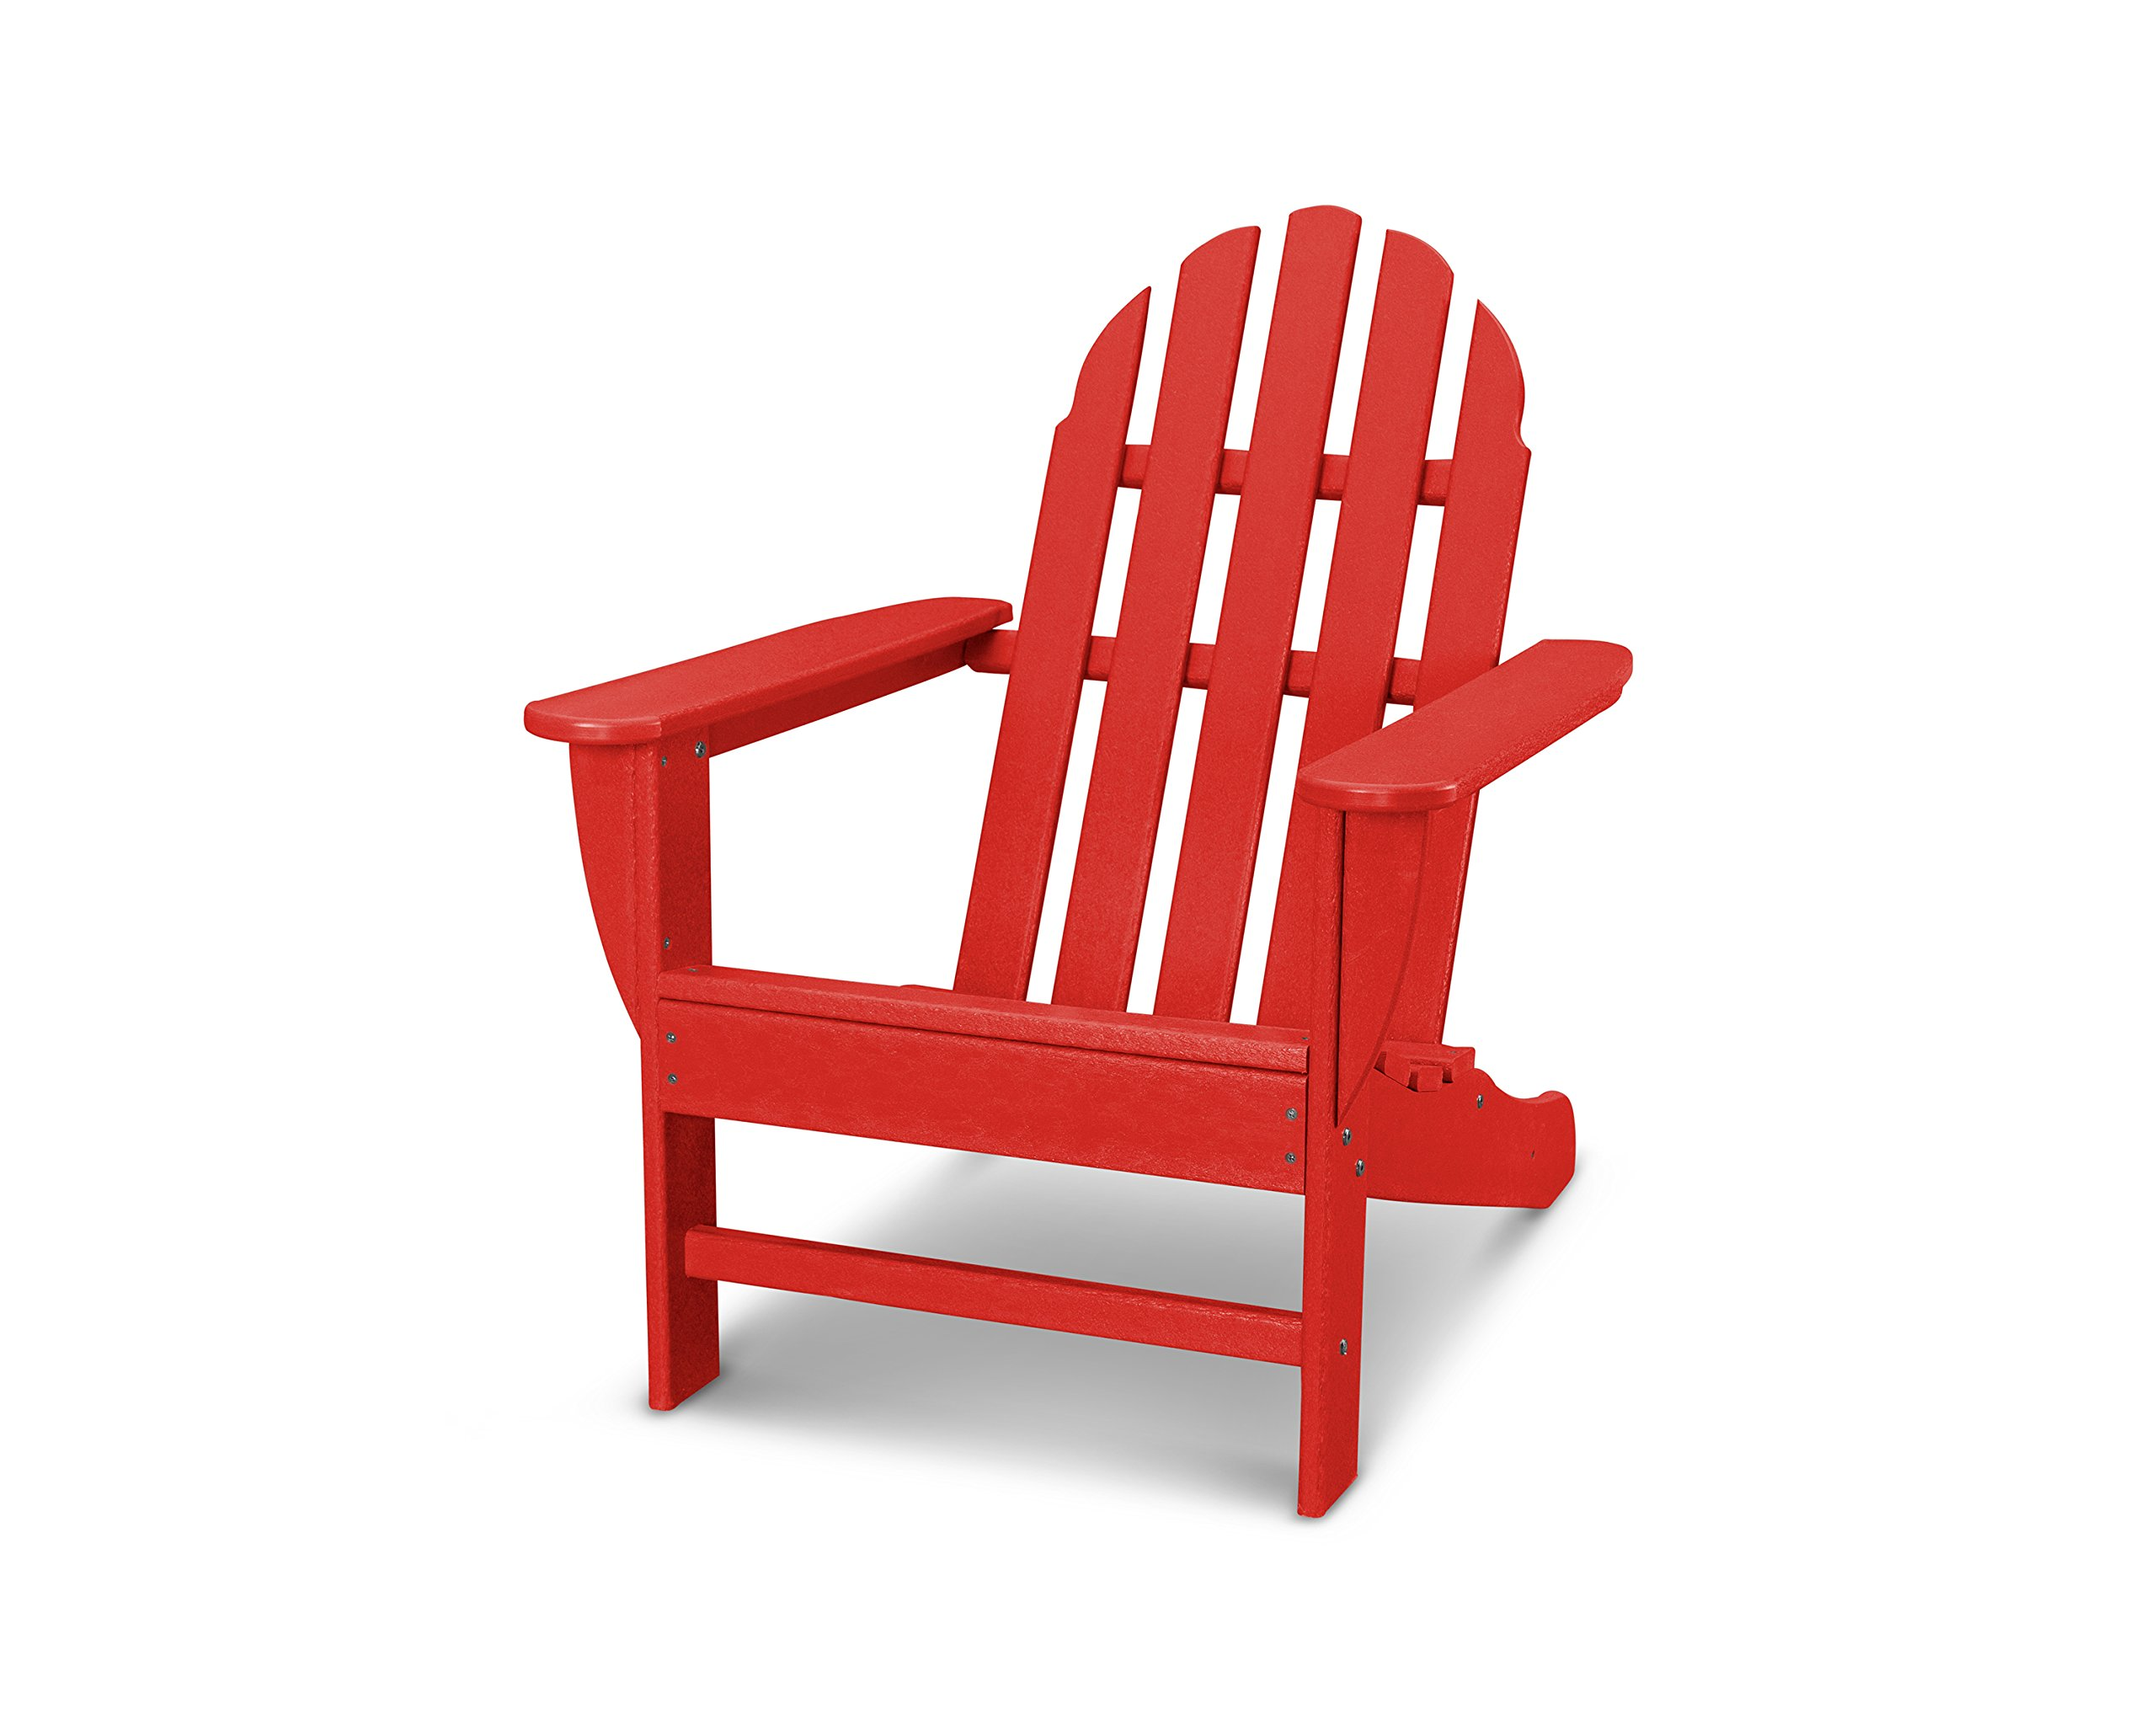 POLYWOOD AD4030SR Classic Outdoor Adirondack Chair, Sunset Red by POLYWOOD (Image #1)